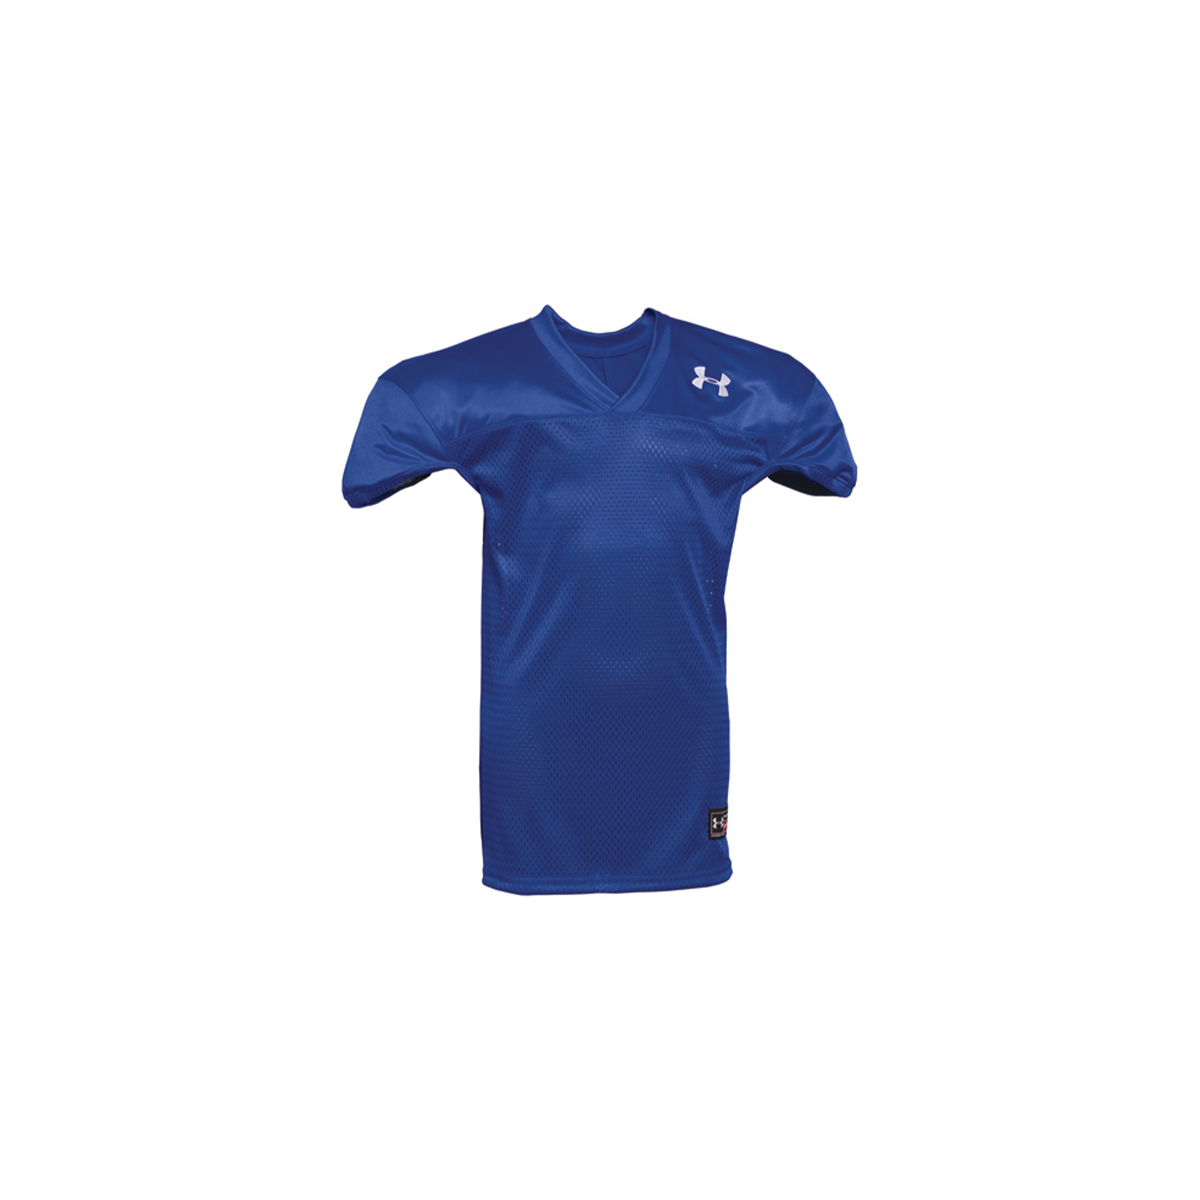 Youth Practice Football Jersey, Royal Blue/White, swatch